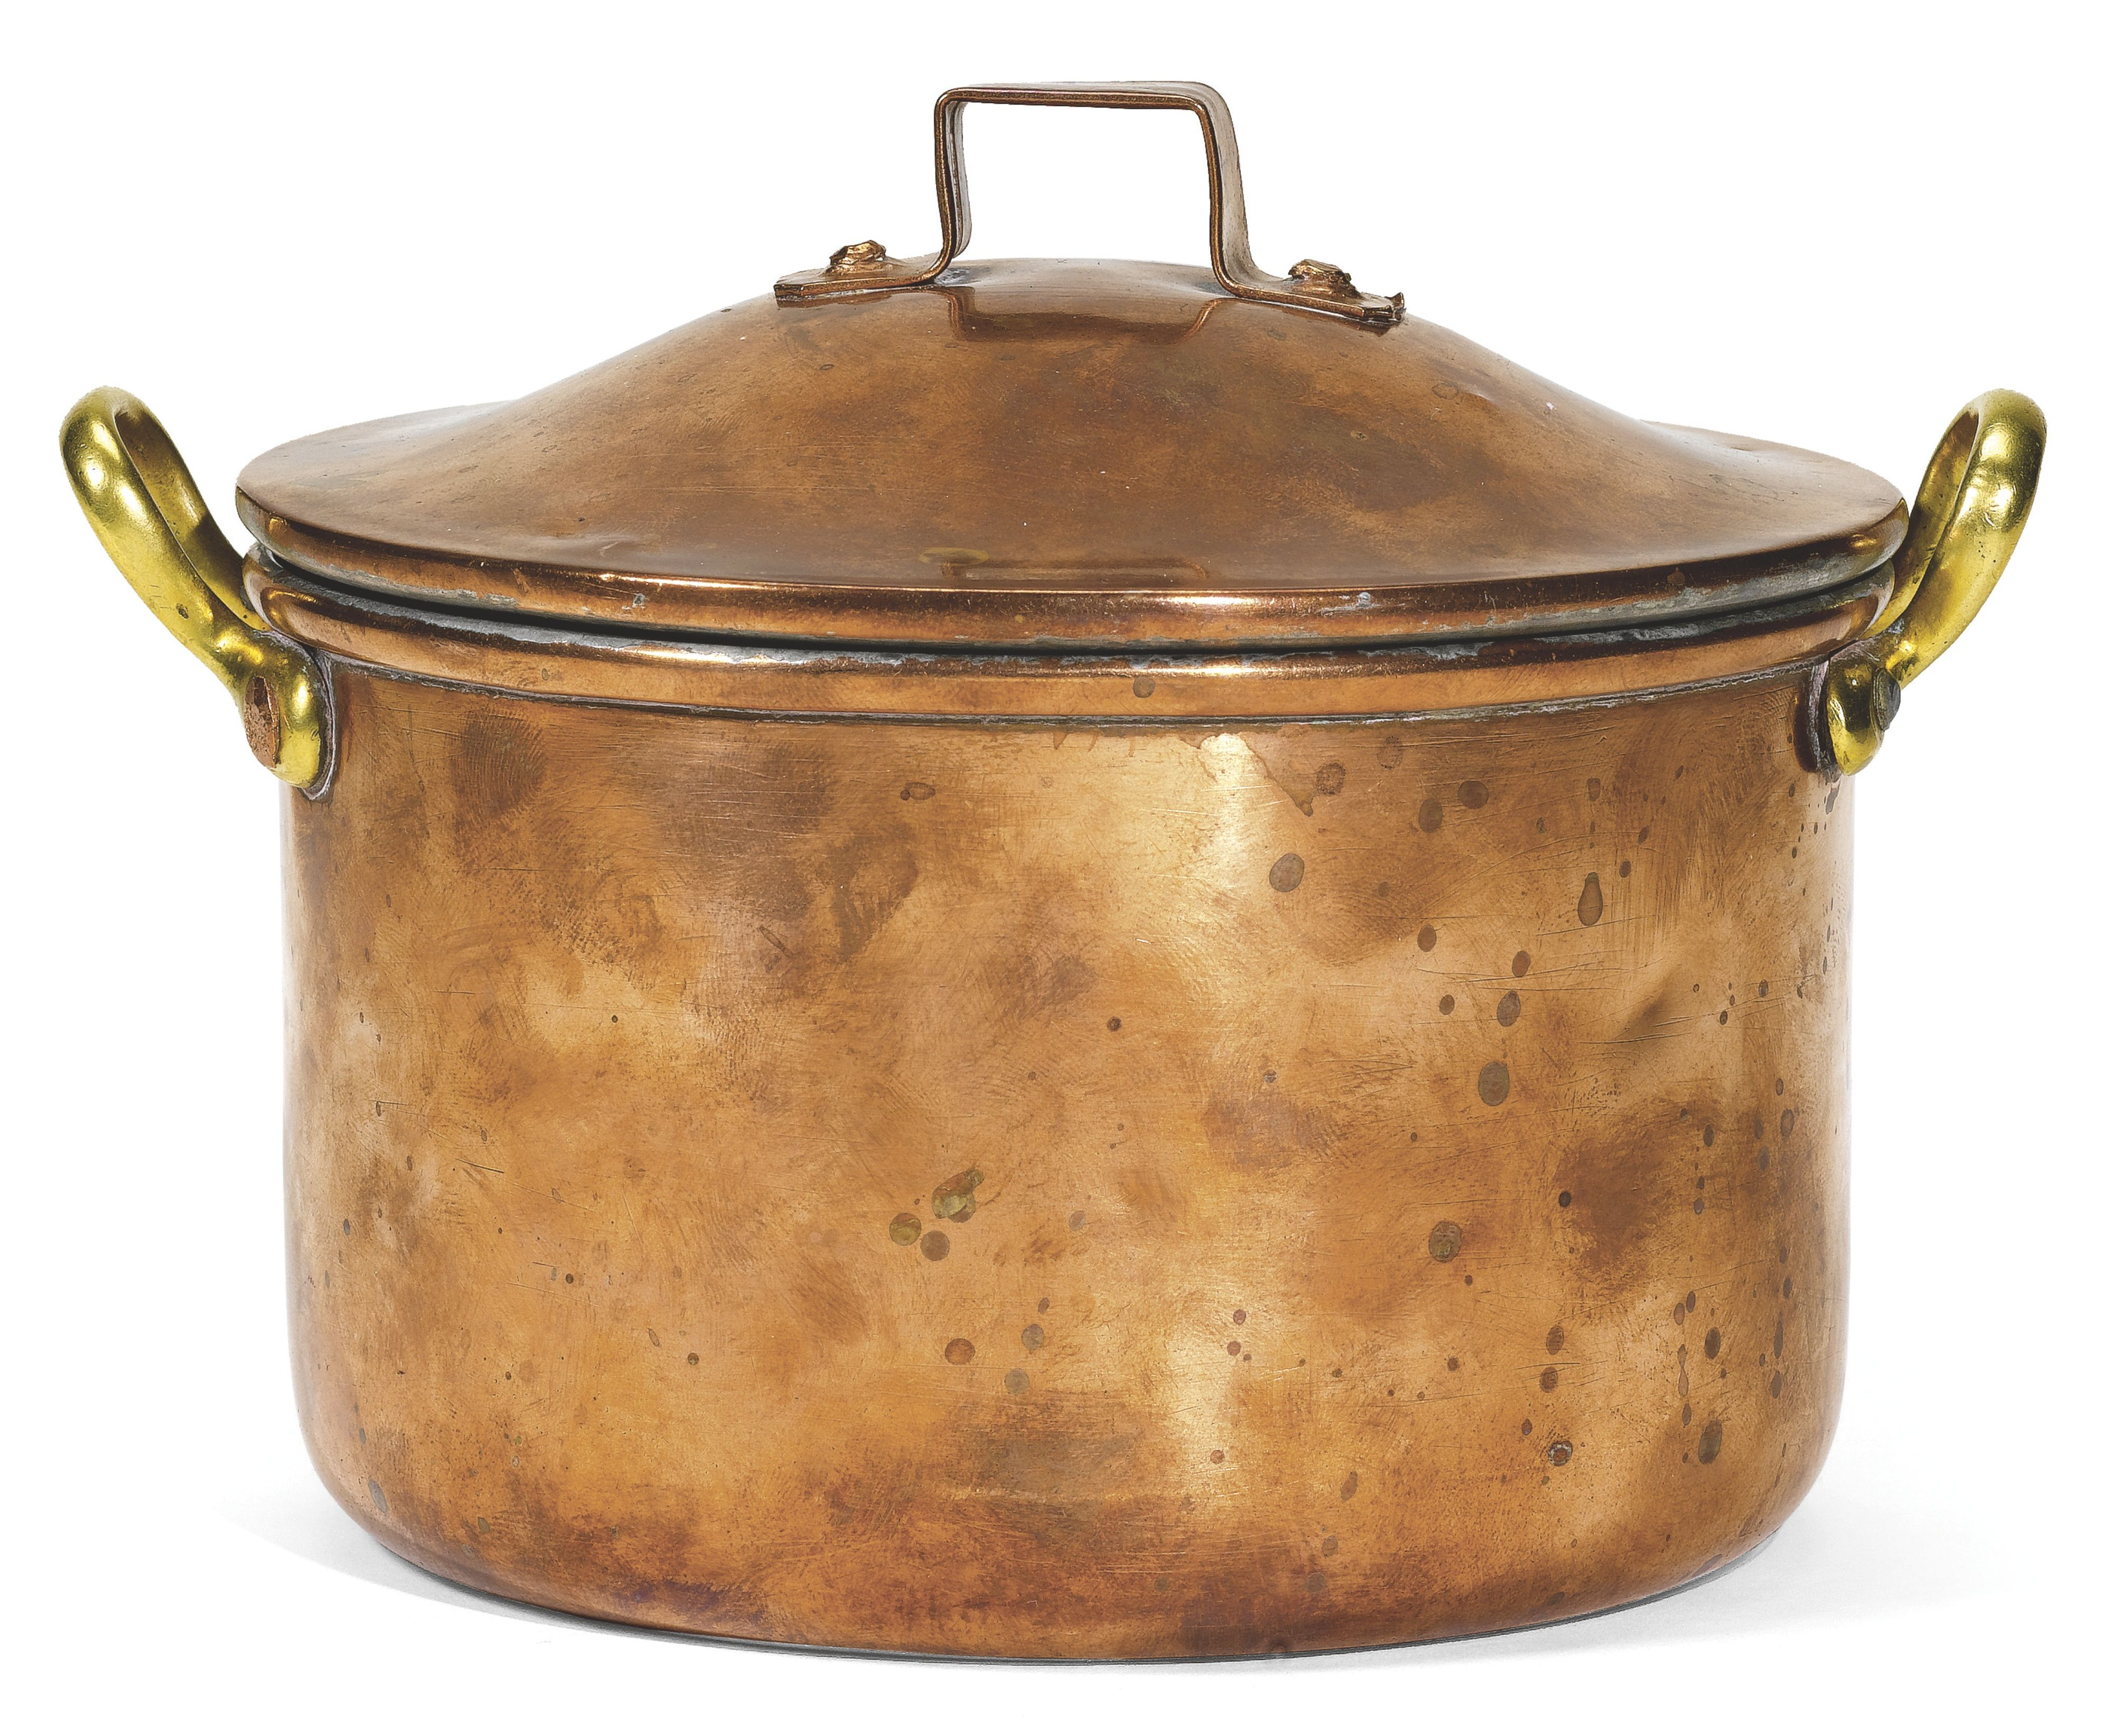 Cooking Pot War A FabergÉ Copper Cooking Pot 1914 Cylindrical With